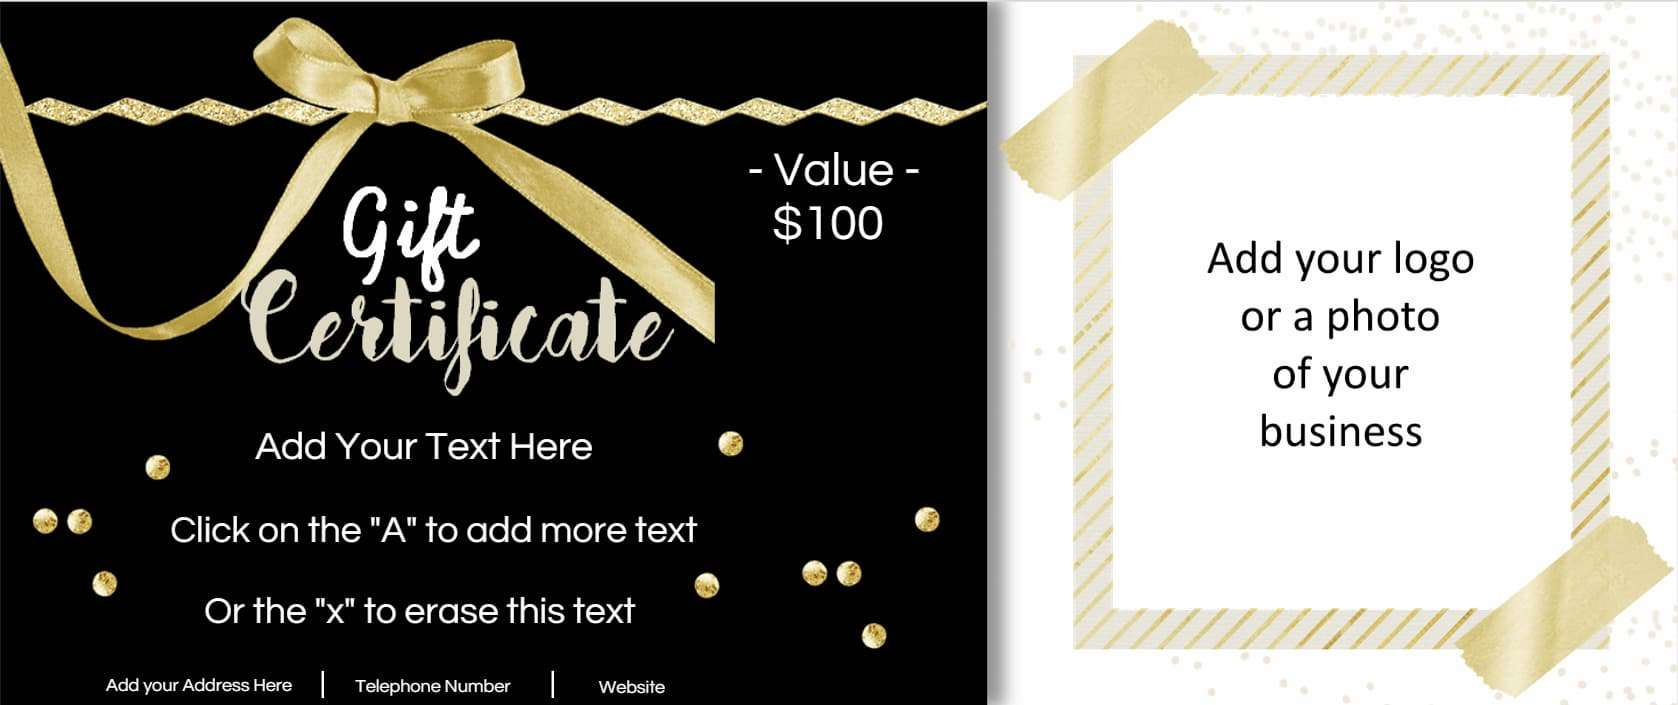 Gift Certificate Template With Logo - Free Printable Gift Certificates For Hair Salon